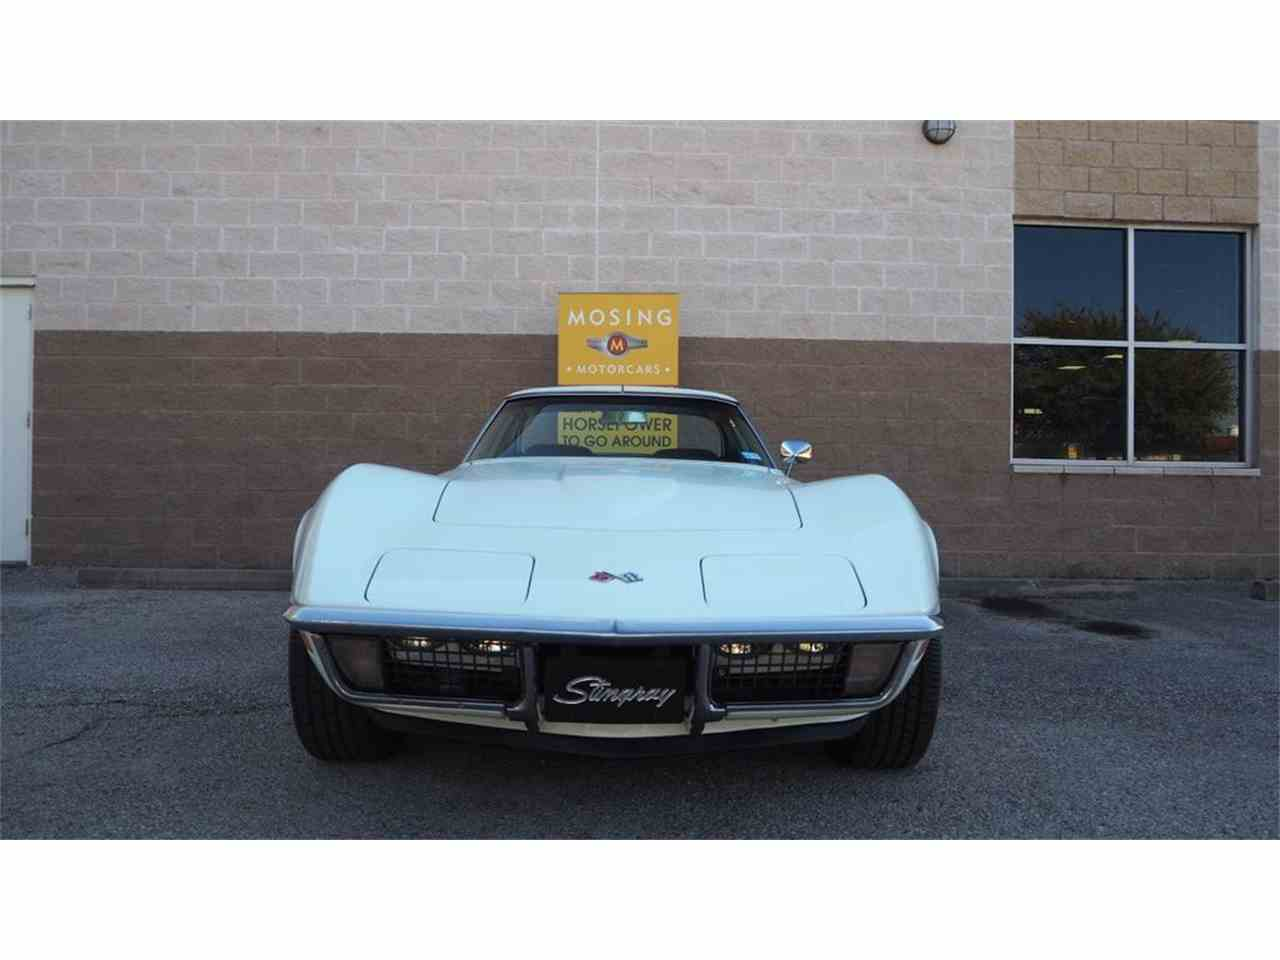 Large Picture of Classic 1971 Chevrolet Corvette located in Austin Texas - $29,999.00 Offered by Mosing Motorcars - M86F